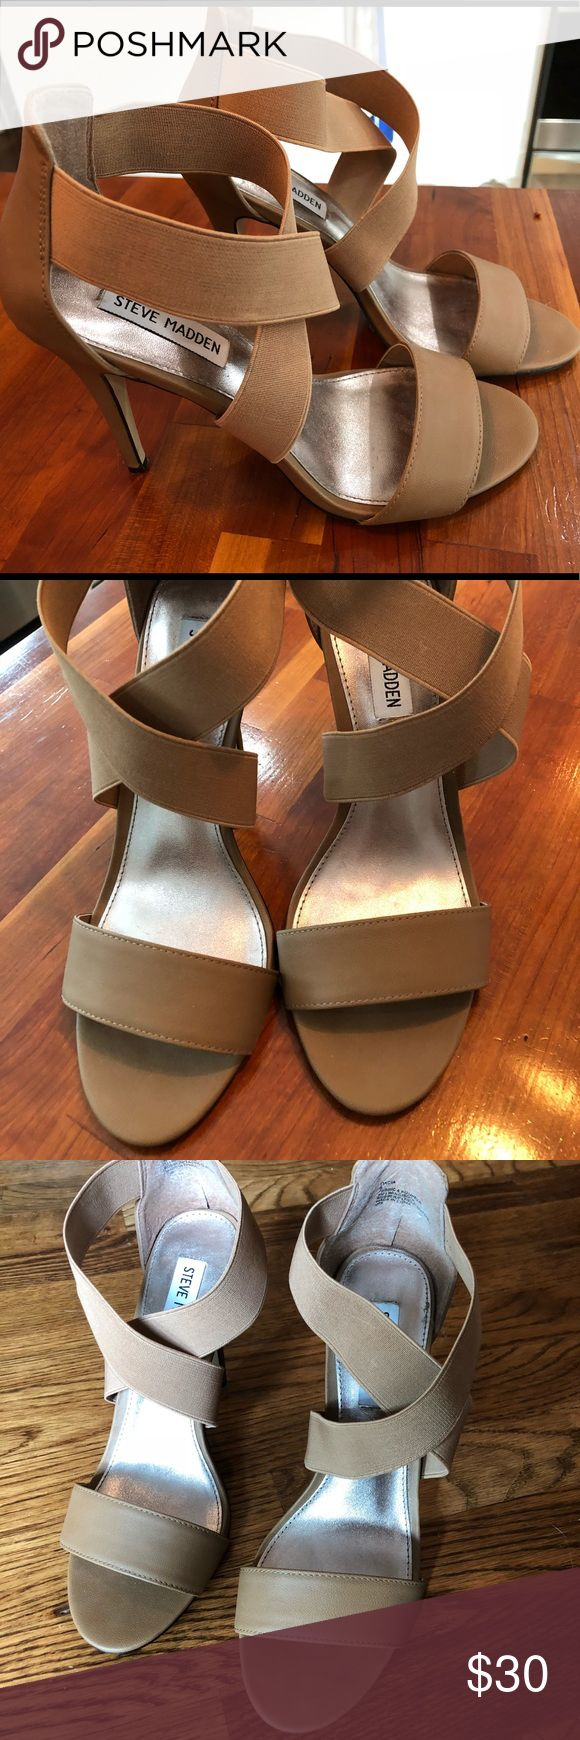 Steve Madden nude strappy heels Nude strappy high heeled sandals. Front strap is leather (faux) and top straps elastic. Never worn outside of the house. Excellent condition. Steve Madden Shoes Heels